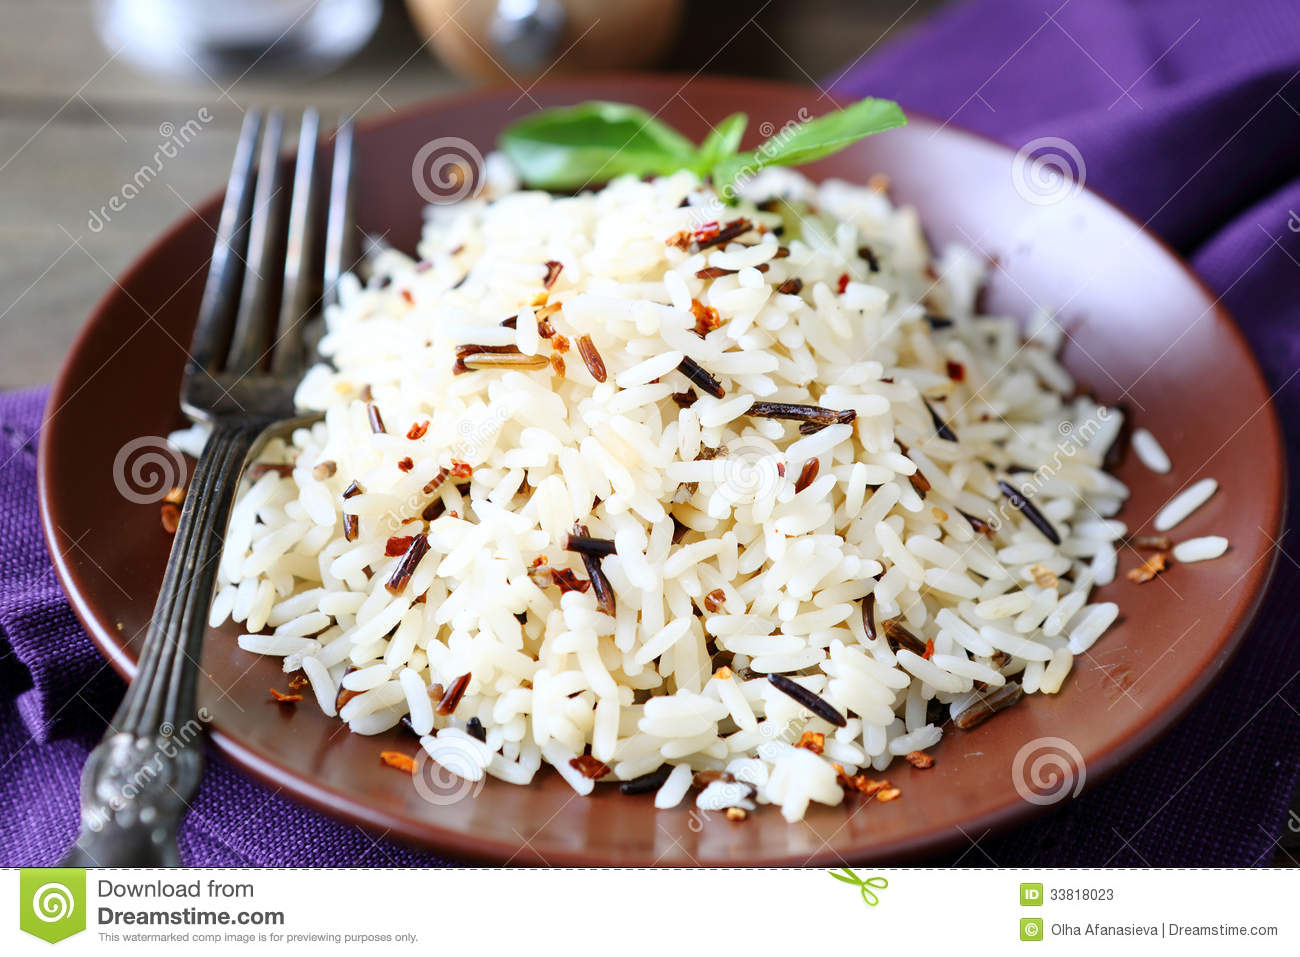 Pictures of cooked rice